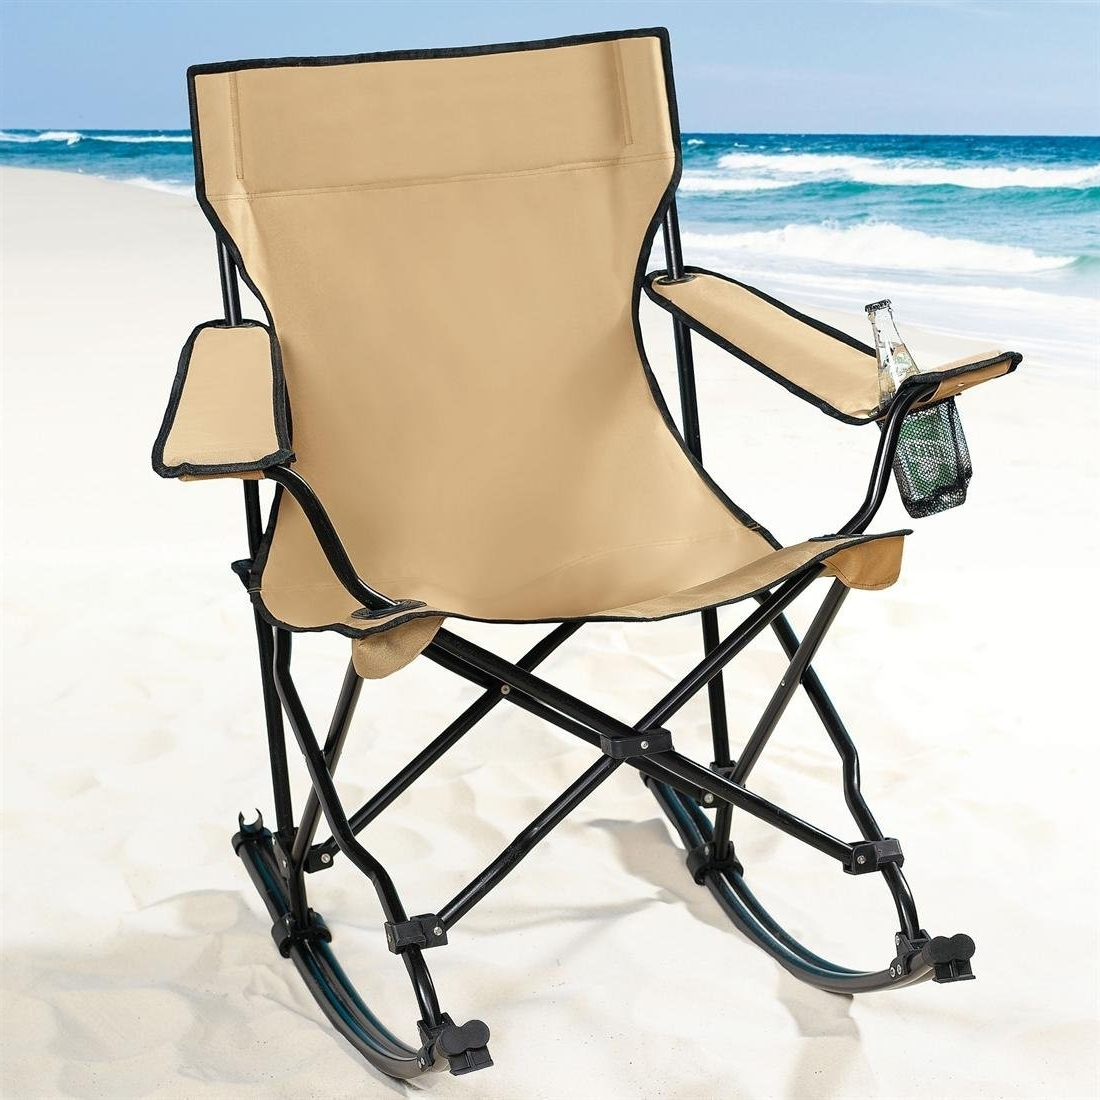 Folding Rocking Chair For Camping : Functional Folding Rocking Chair Throughout Recent Folding Rocking Chairs (View 5 of 20)